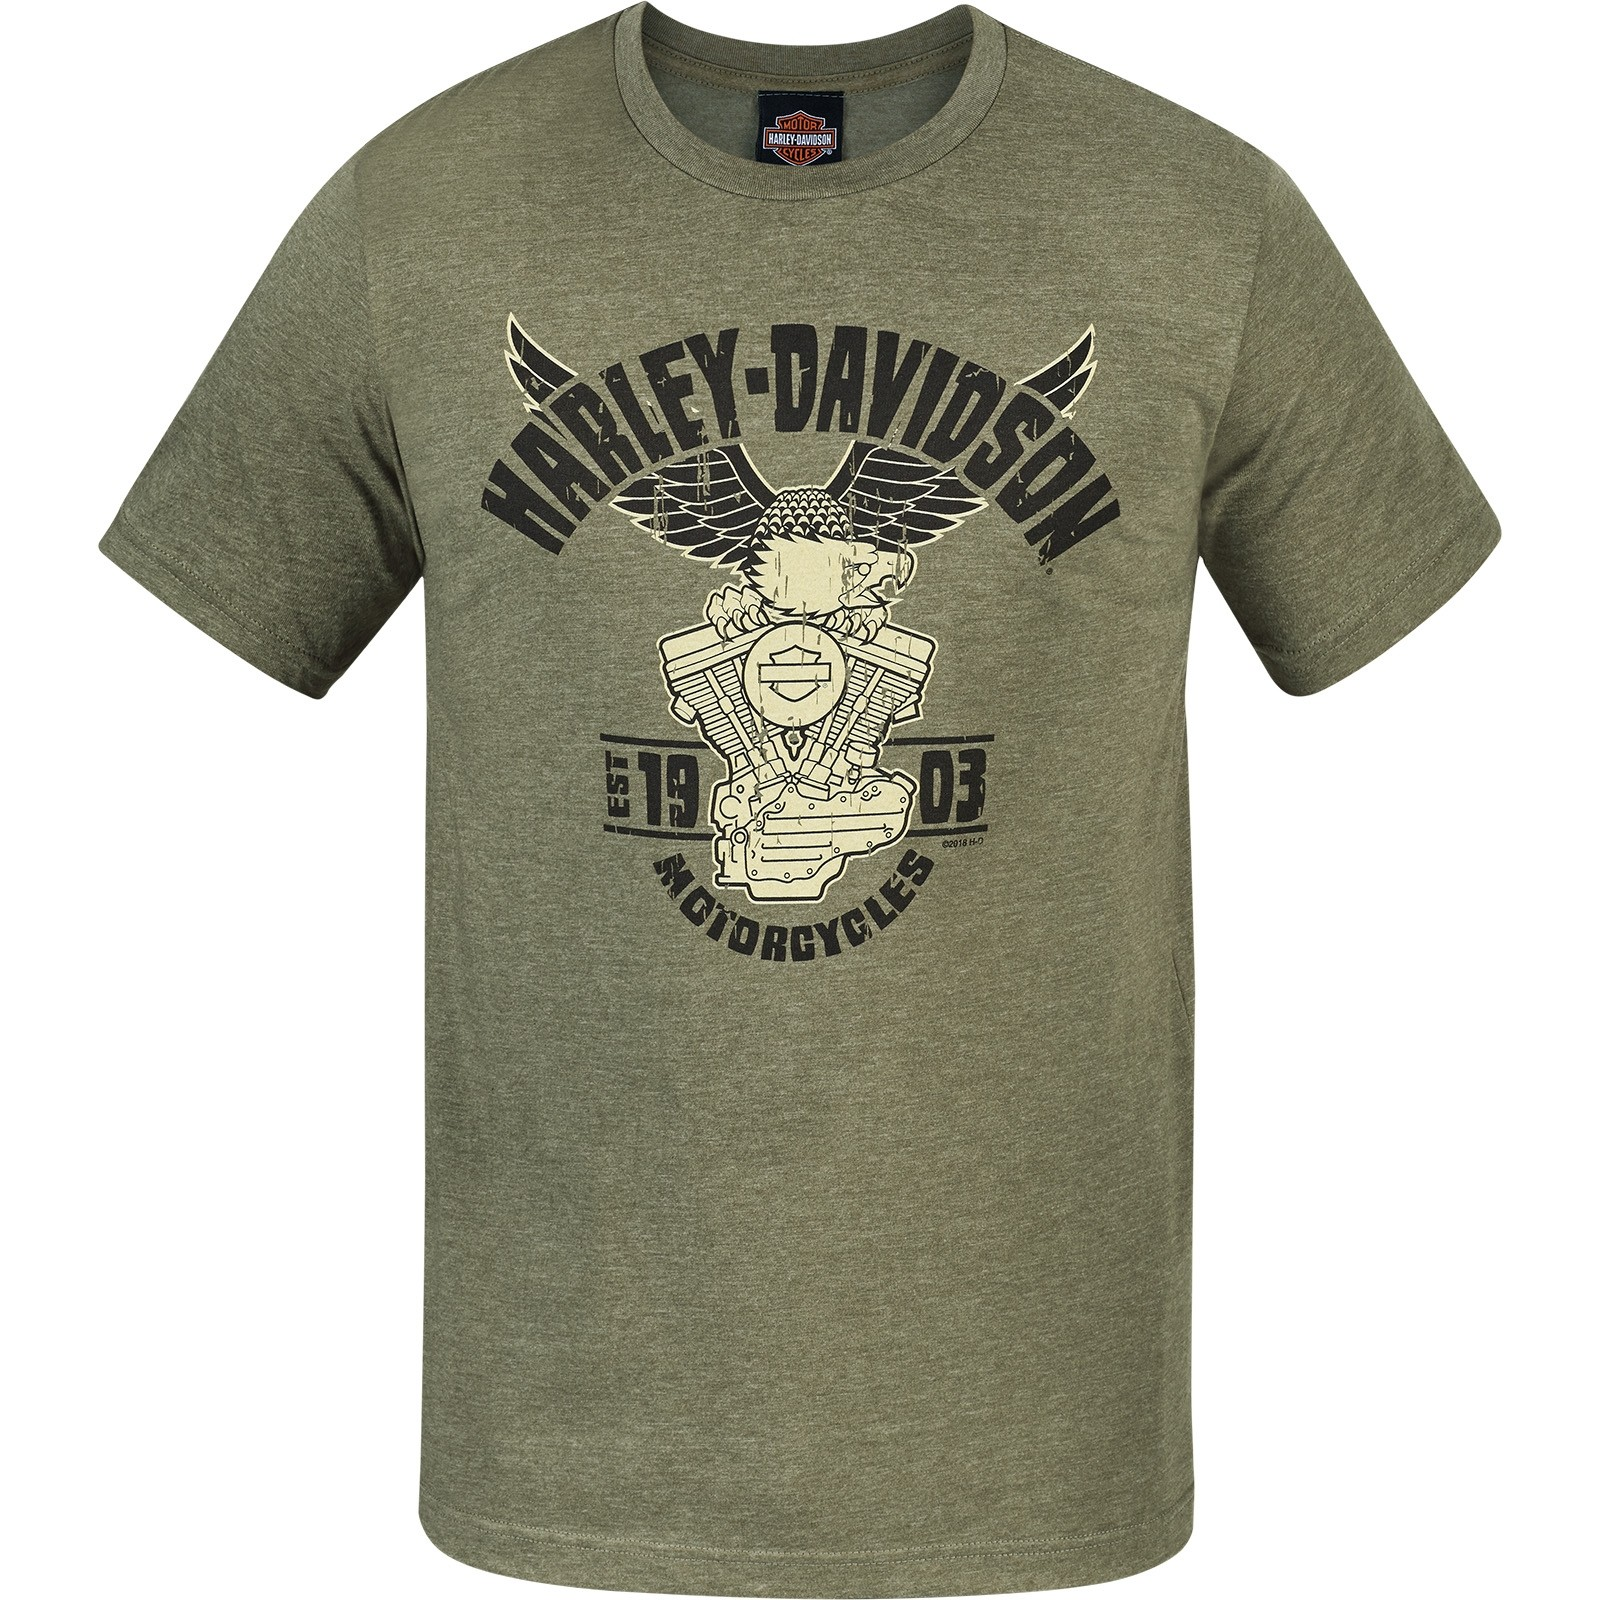 Harley-Davidson Military Lightweight Graphic T-Shirt - Camp Leatherneck | Eagle Decal